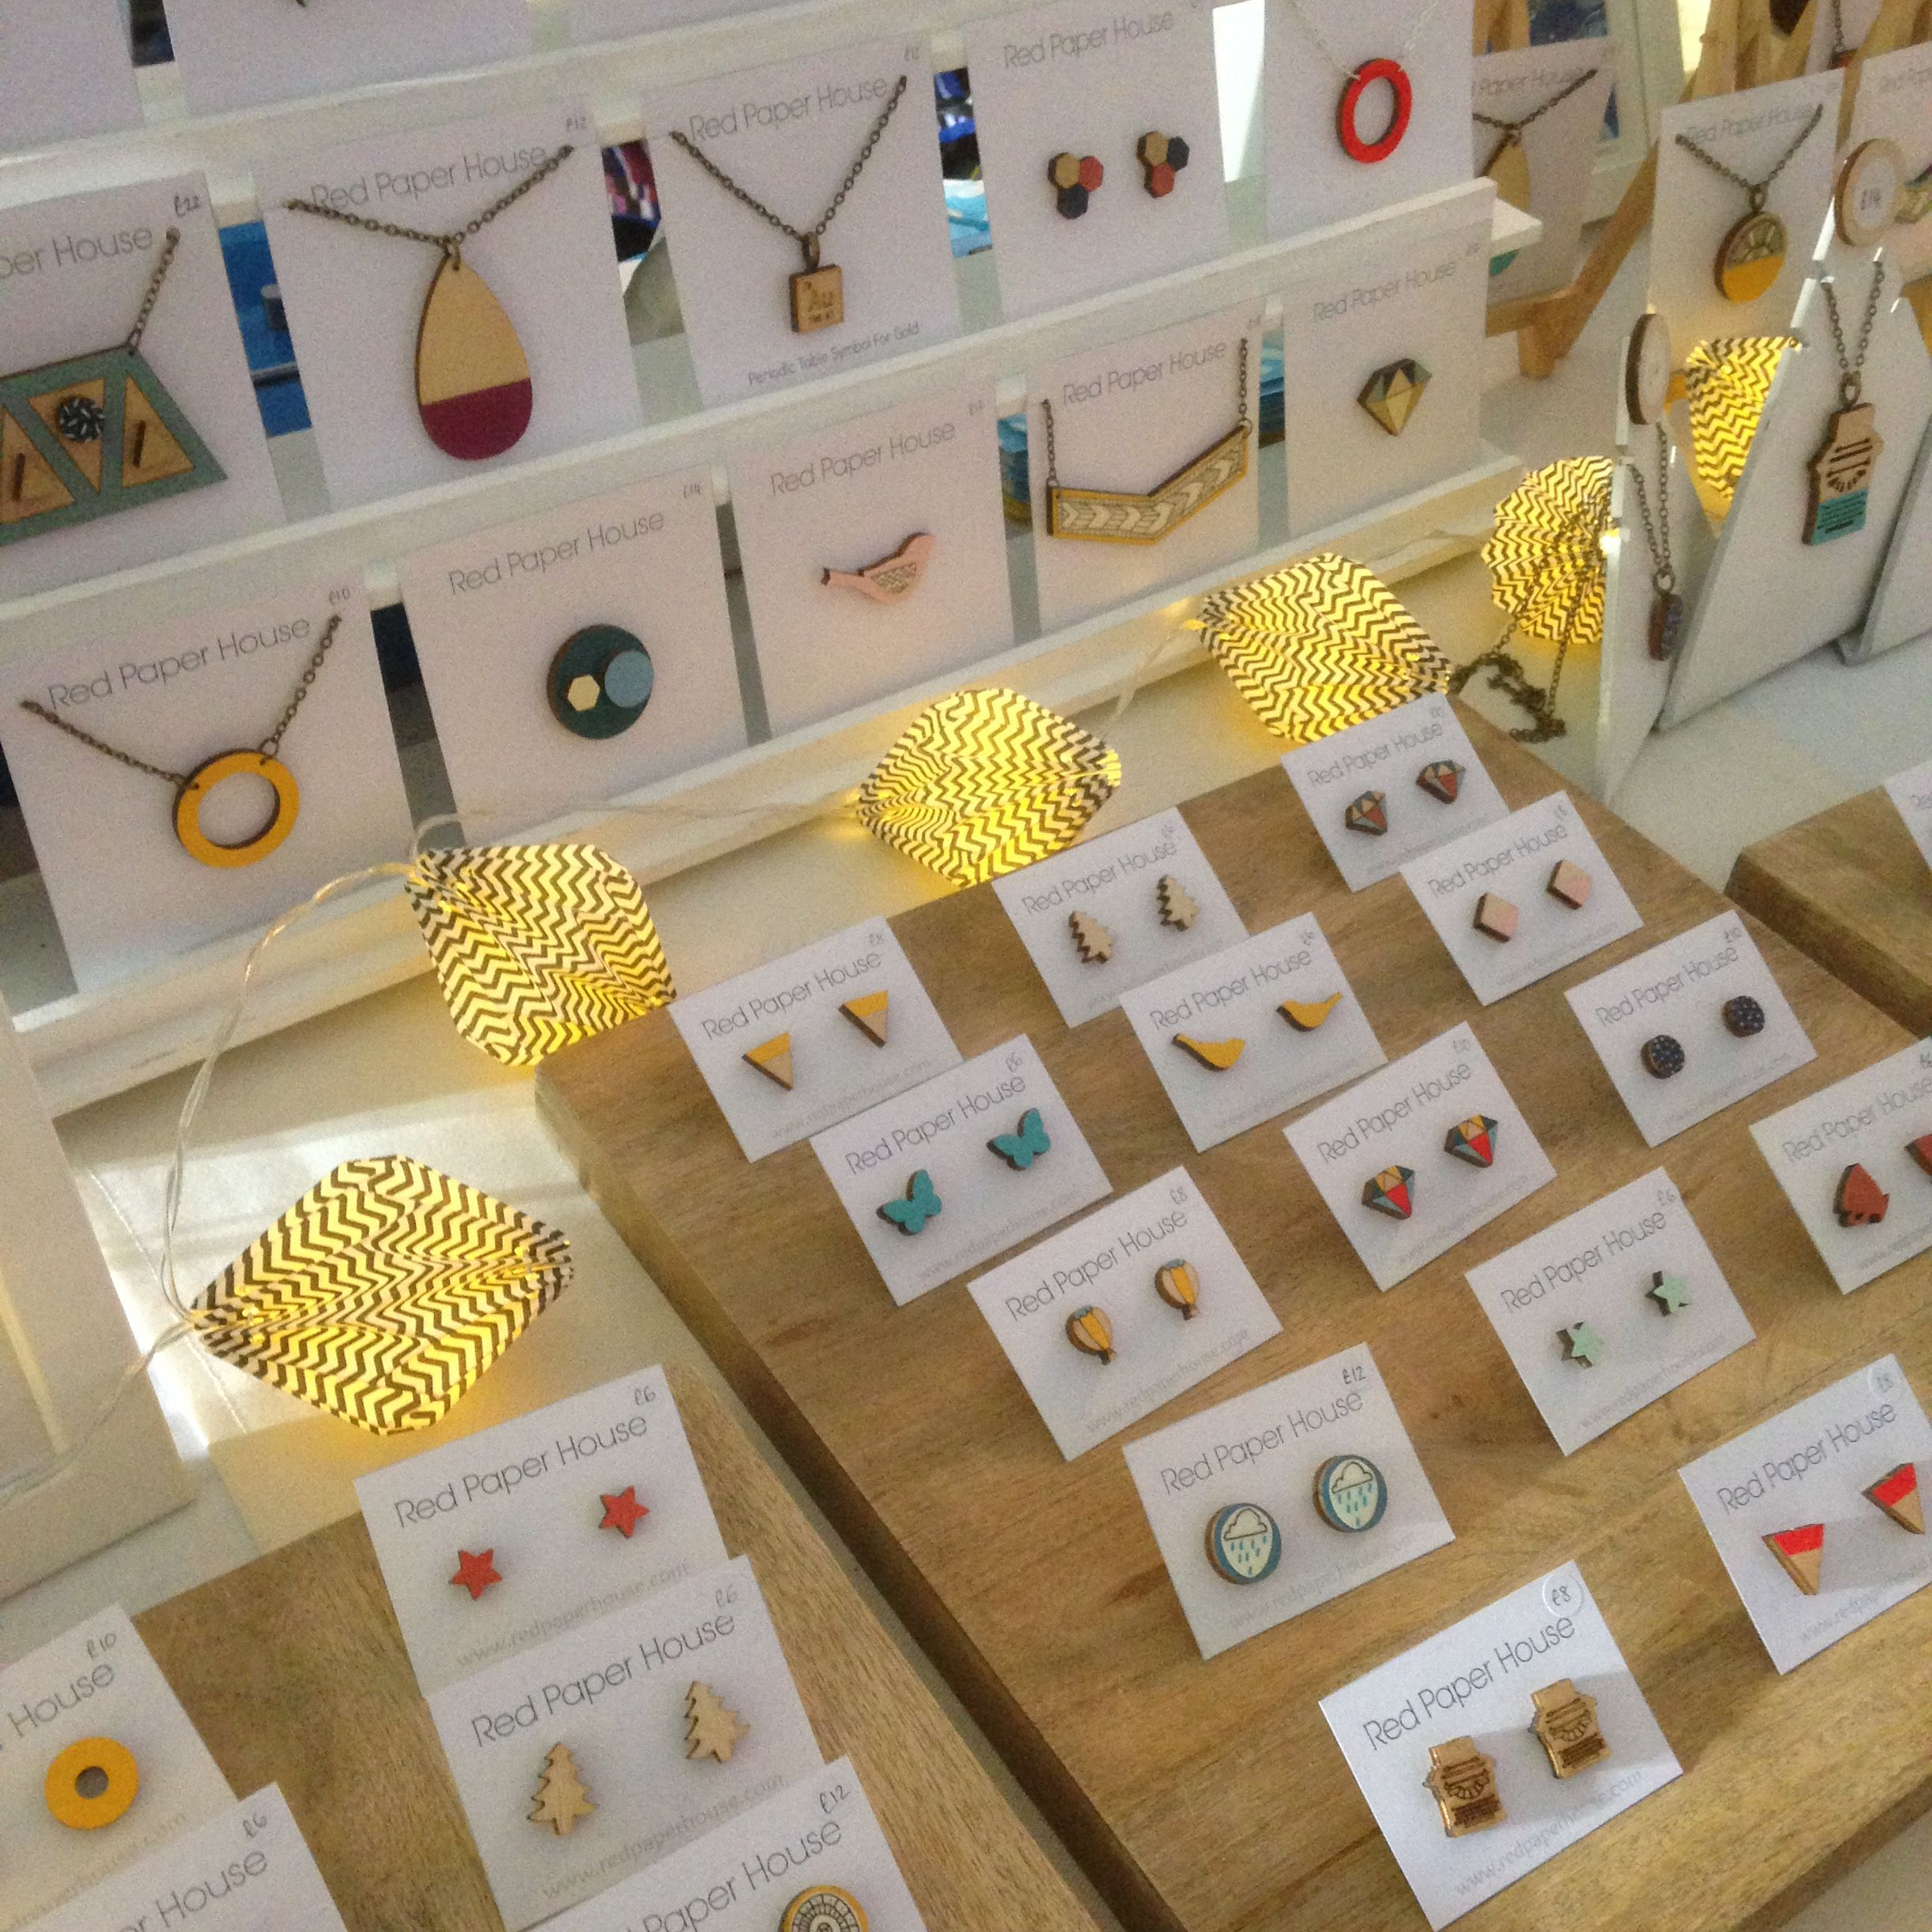 Pin by red paper house on red paper house craft fair displays craft fair displays shop displays paper houses craft fairs red paper jeuxipadfo Image collections